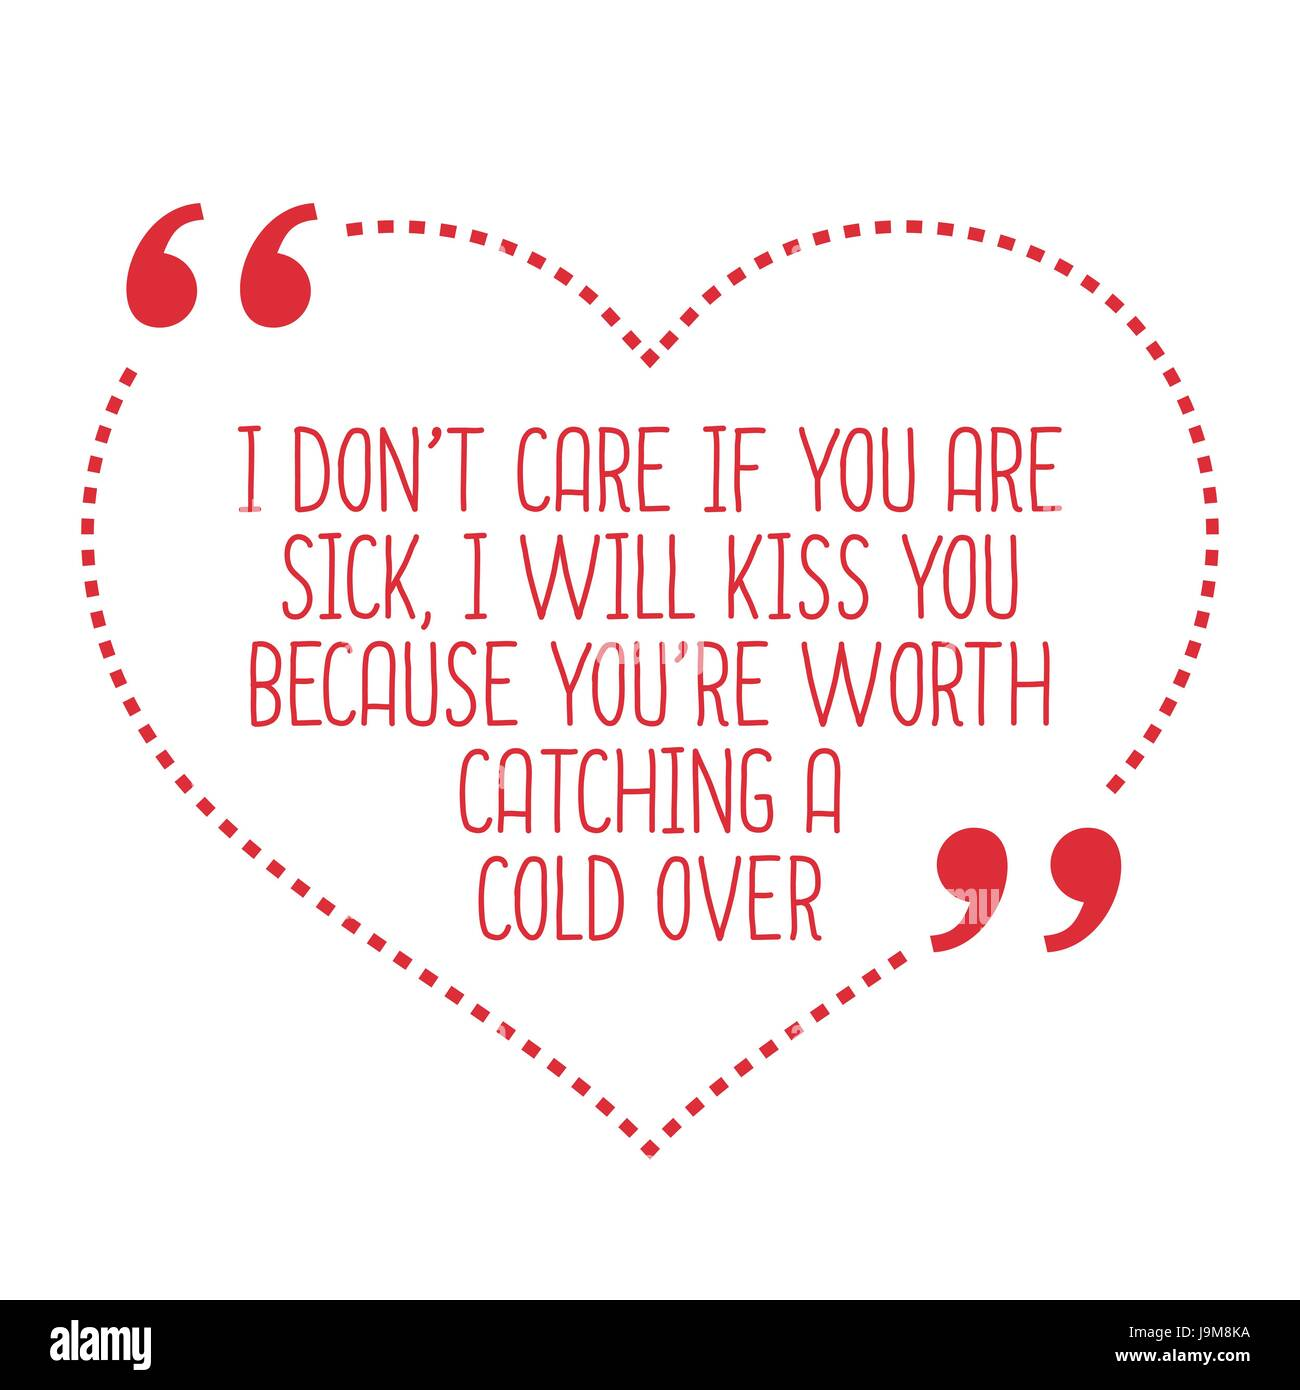 I Love You Because Quotes Funny Love Quotei Don't Care If You Are Sick I Will Kiss You